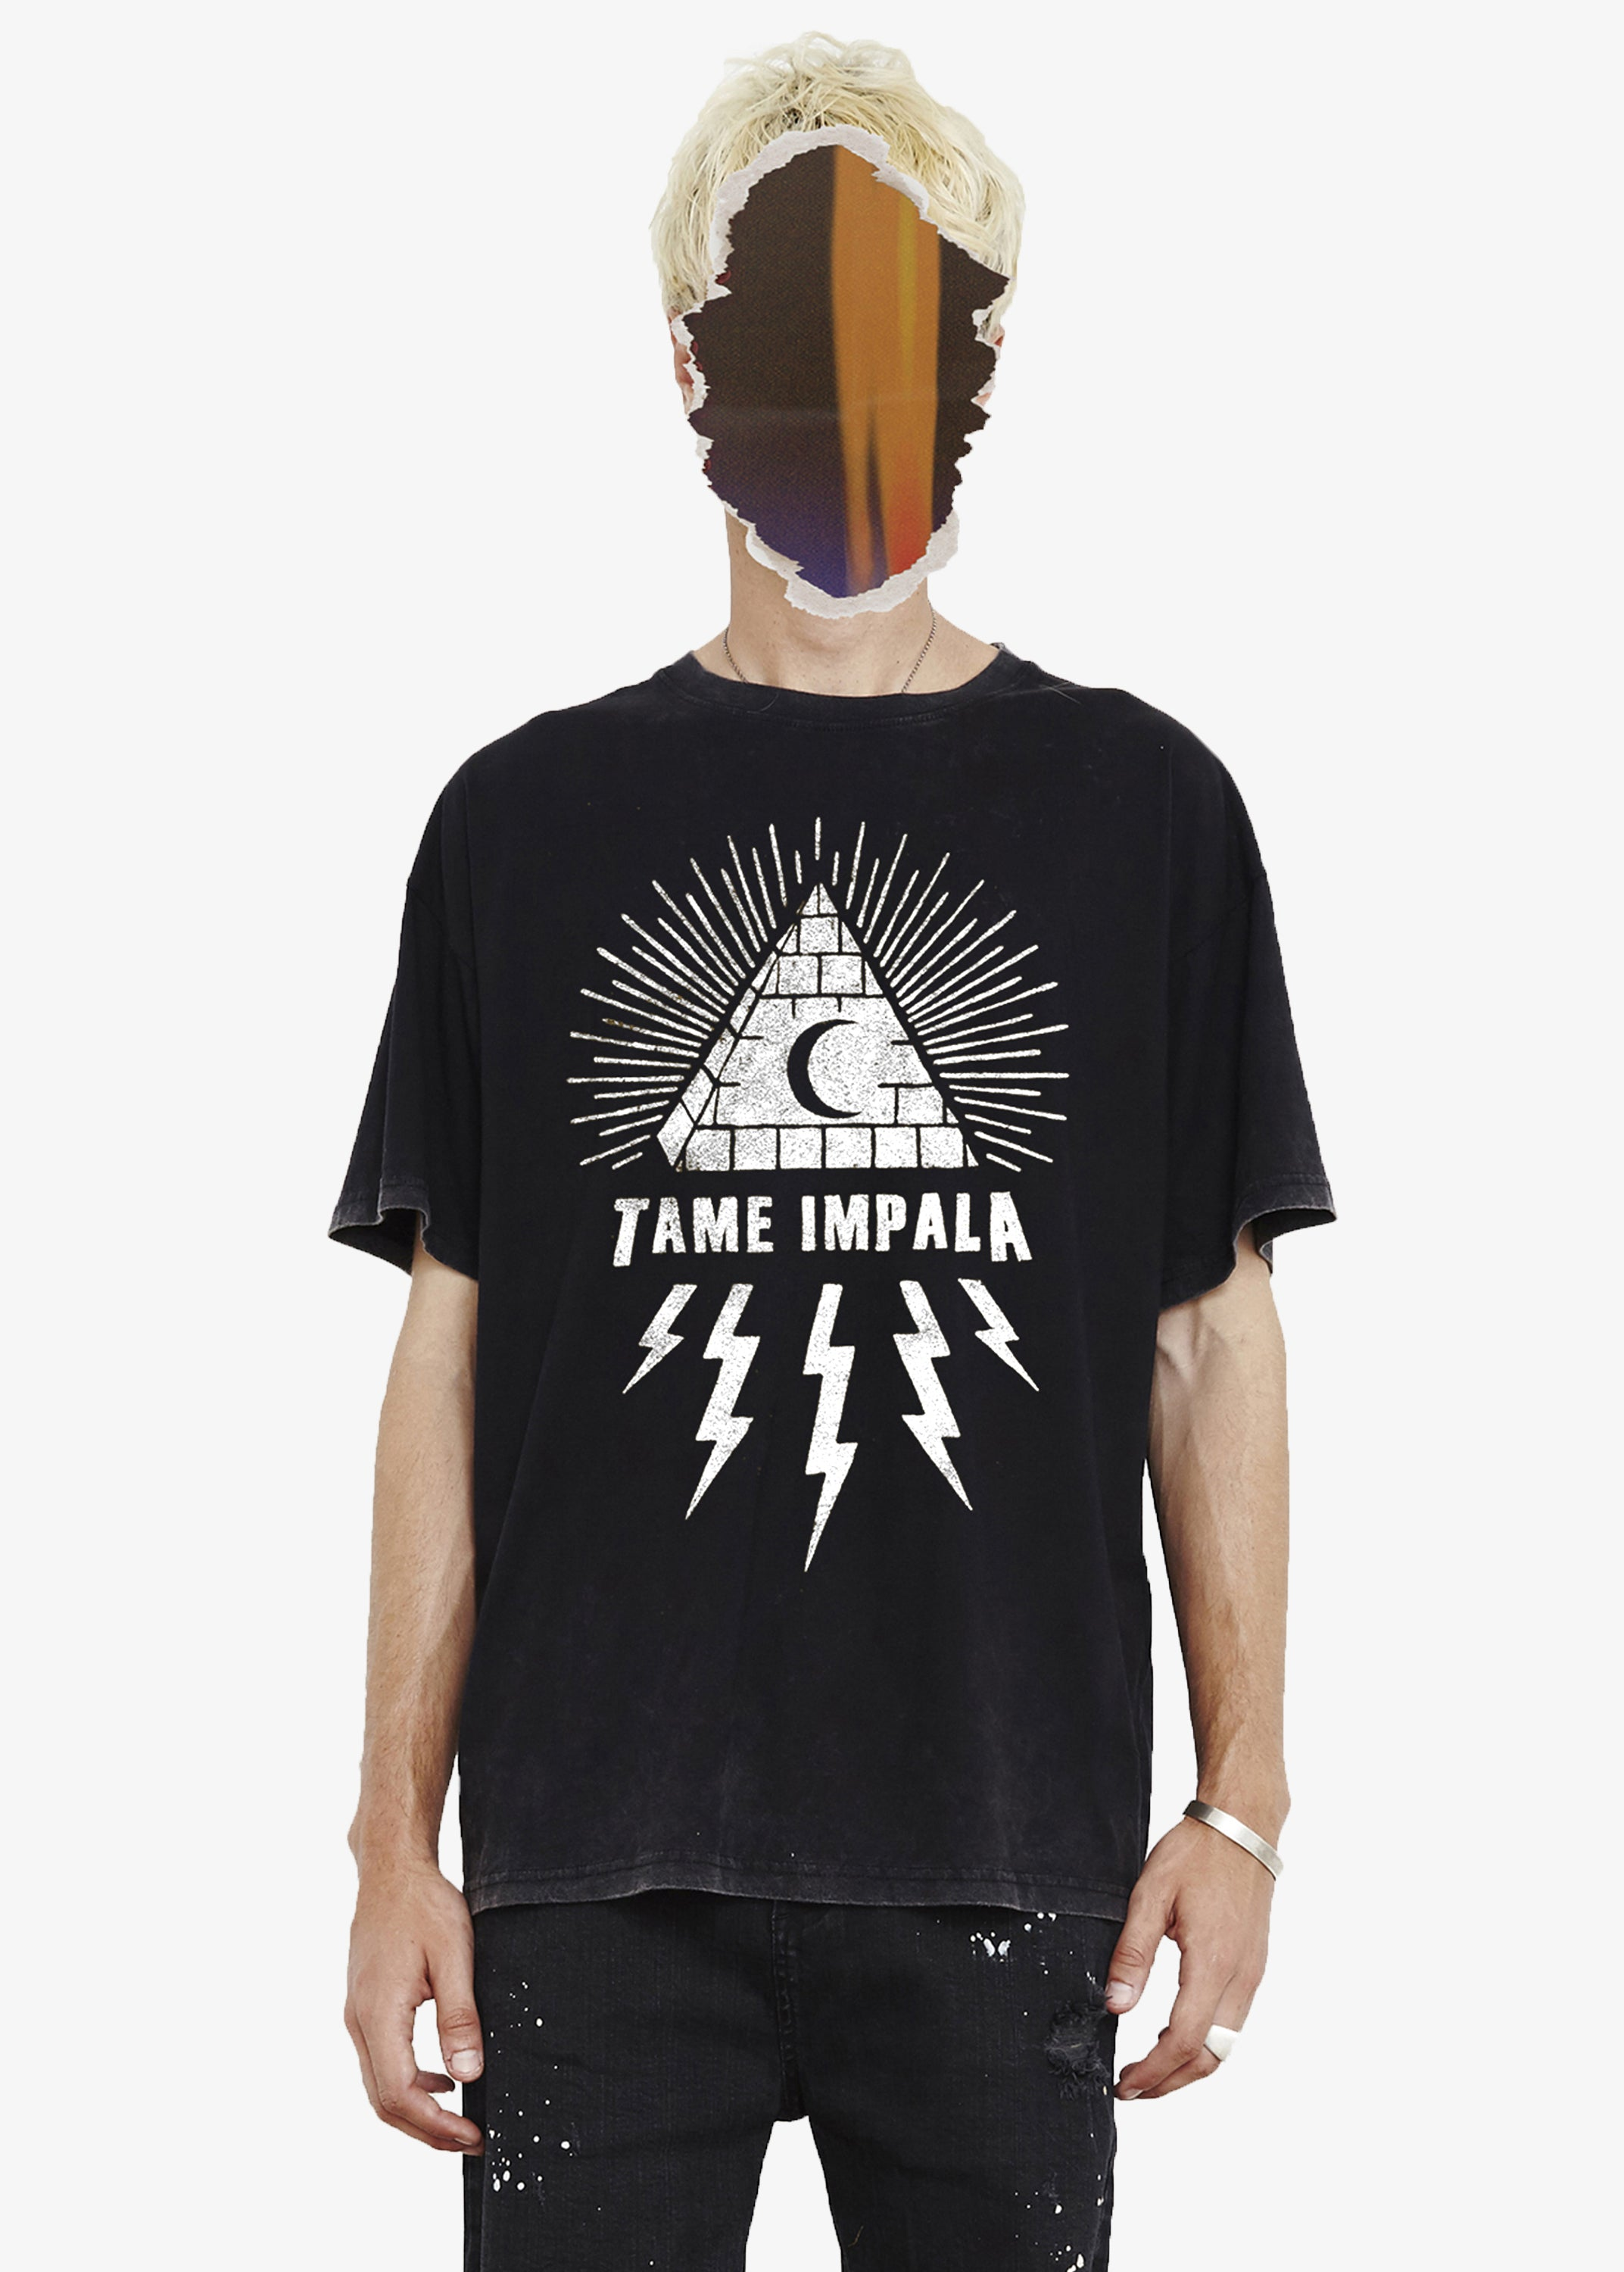 THE PEOPLE VS X TAME IMPALA TEE - WHITE GRAPHIC